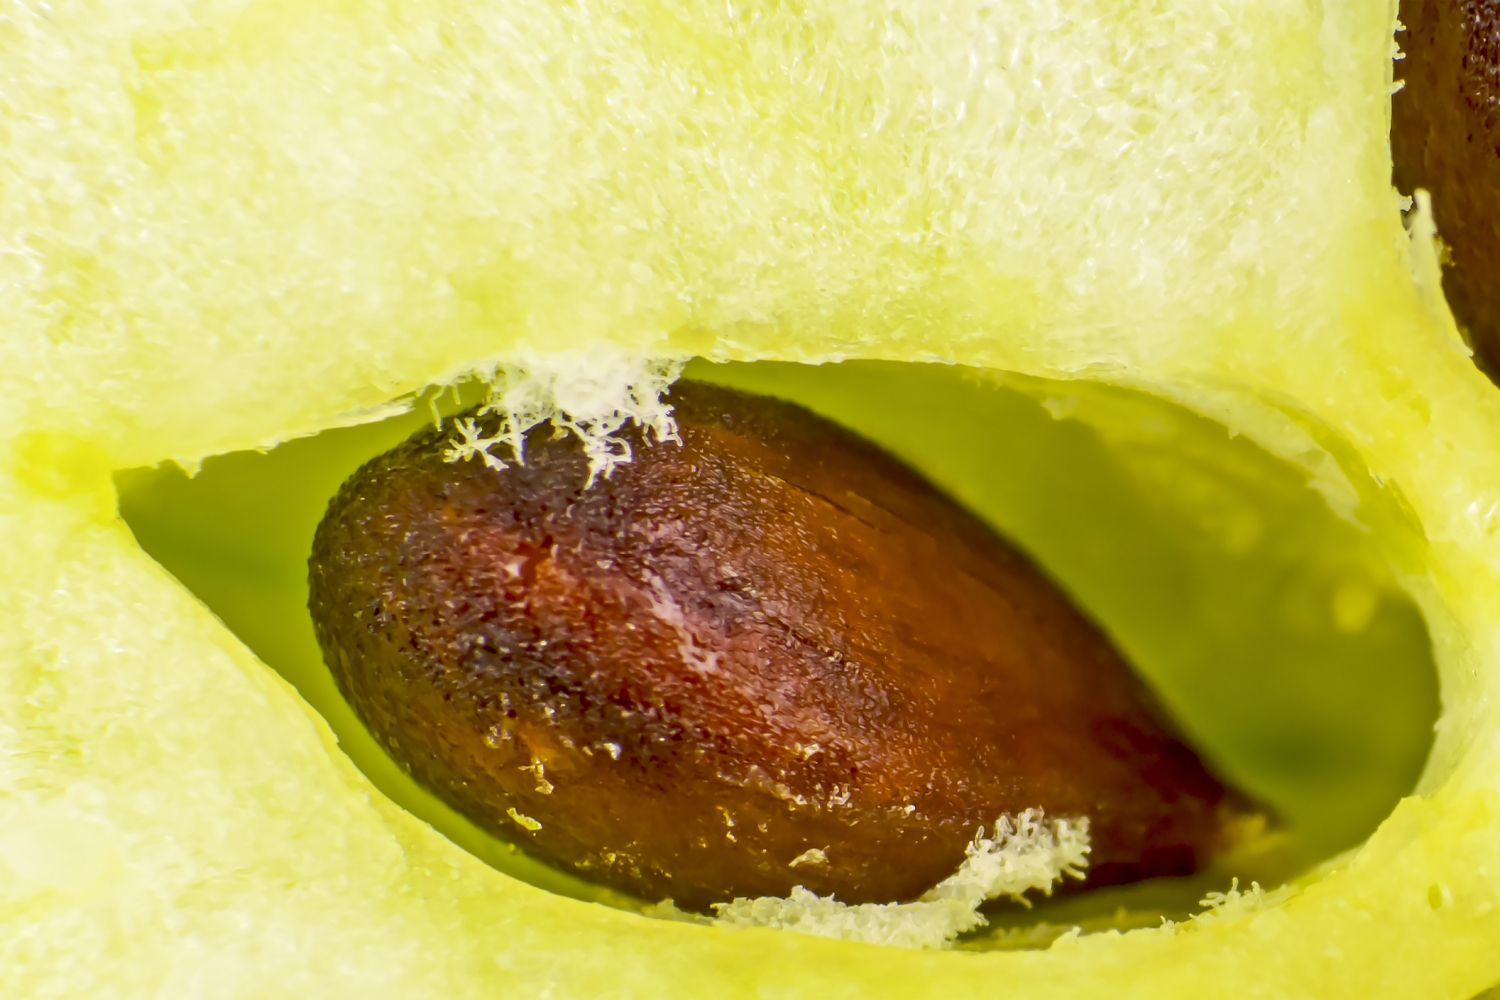 Apple Core With Seed